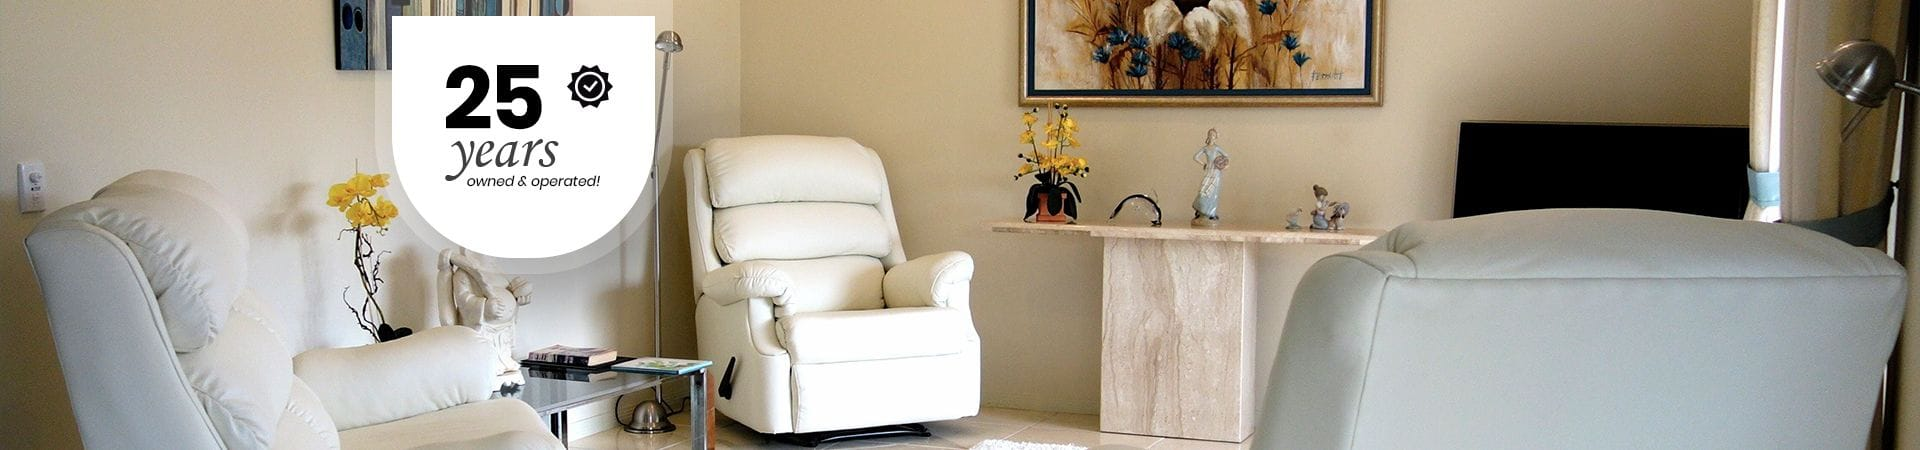 Lift Chairs | Custom Built Chairs on the Gold Coast